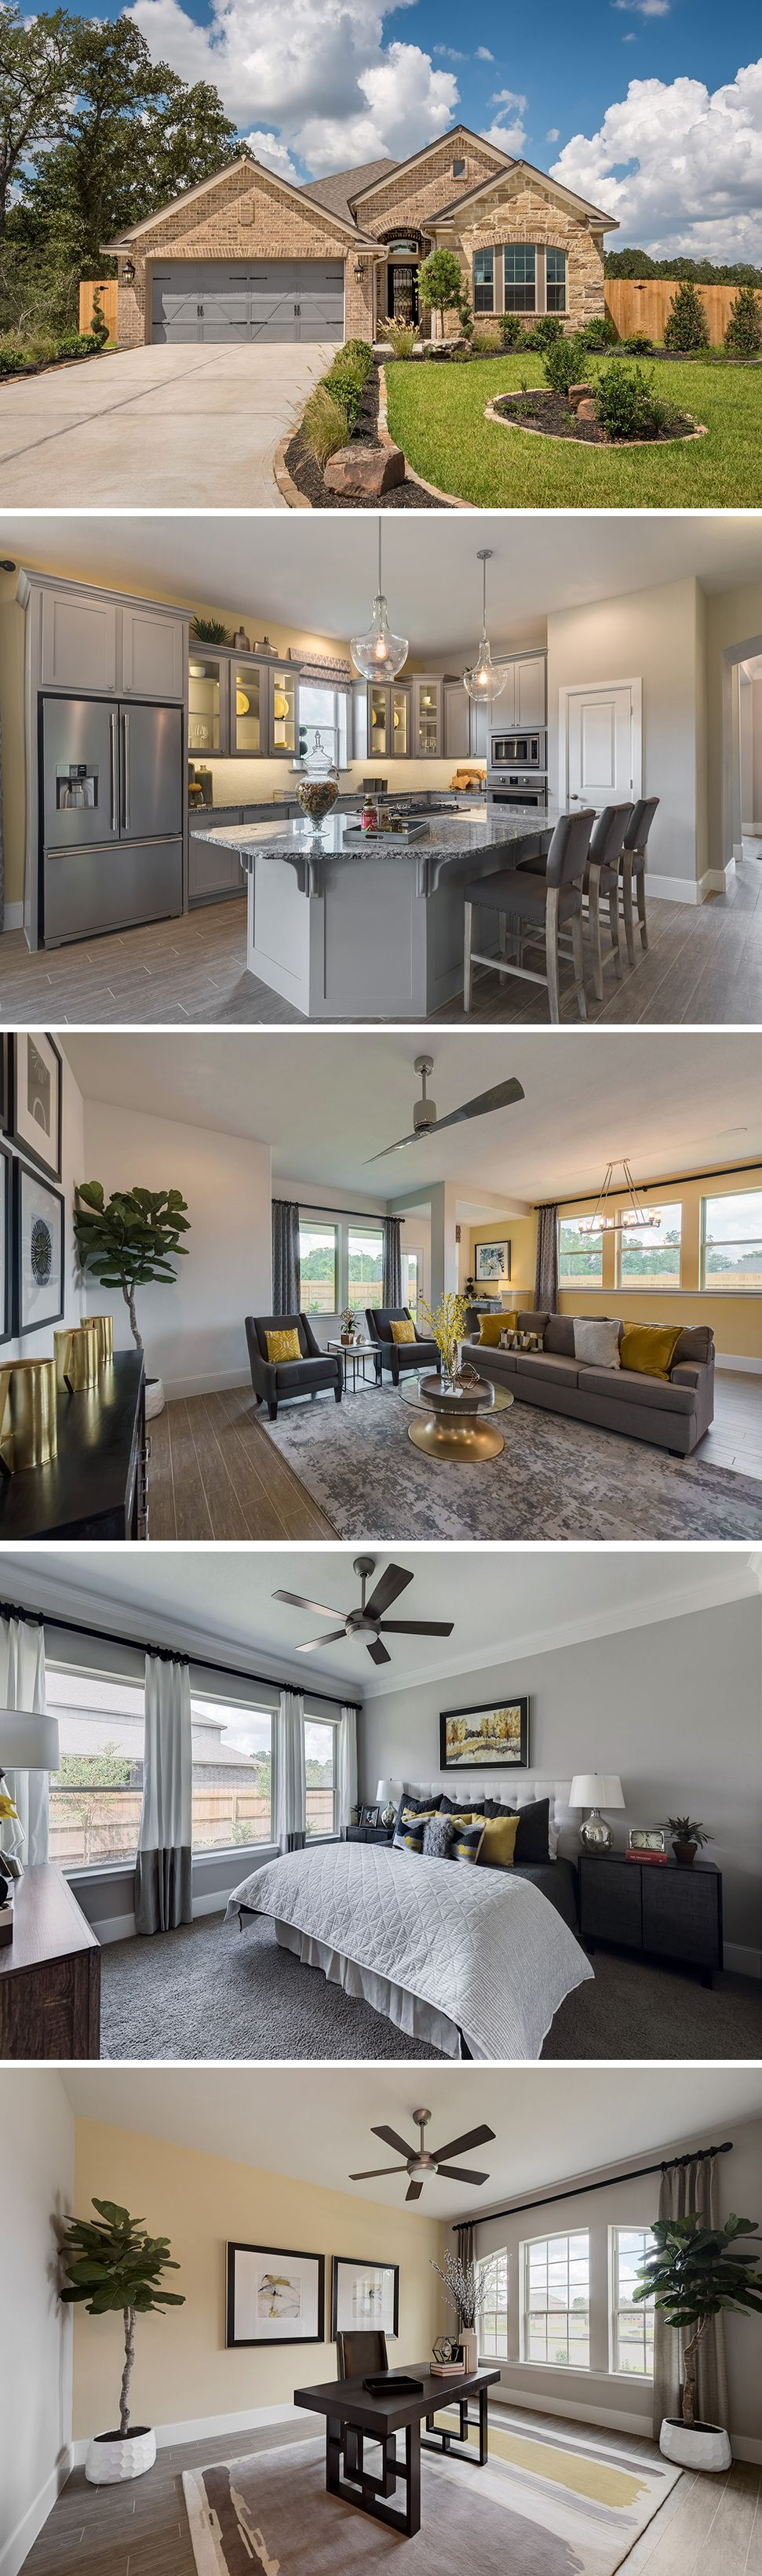 The Kepley In Castlegate Ii In College Station Tx Is A Beautiful Home With The Option Of 3 To 4 Bedrooms And 1 2 Full Bathro Dream House Home Interiors Dream